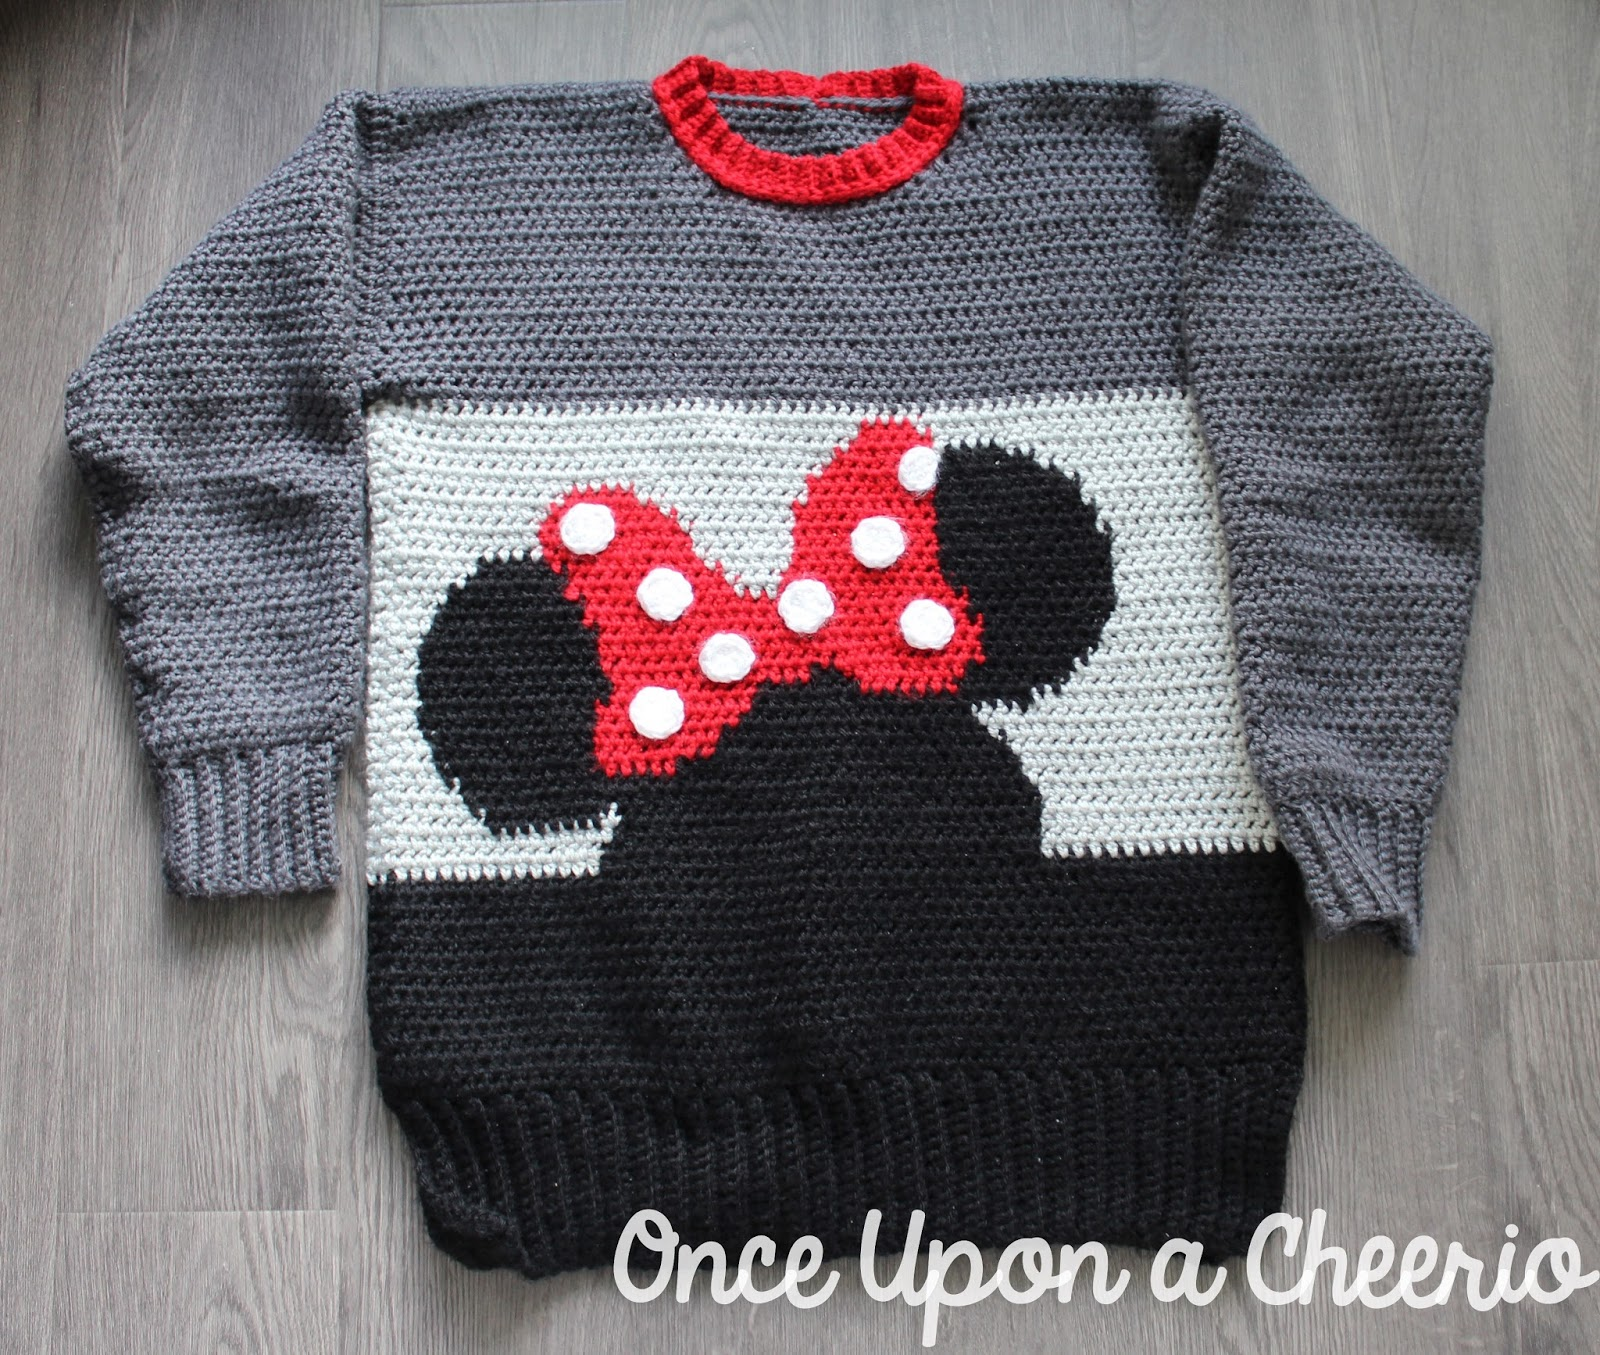 Minnie Mouse Sweater Crochet Pattern - Once Upon a Cheerio